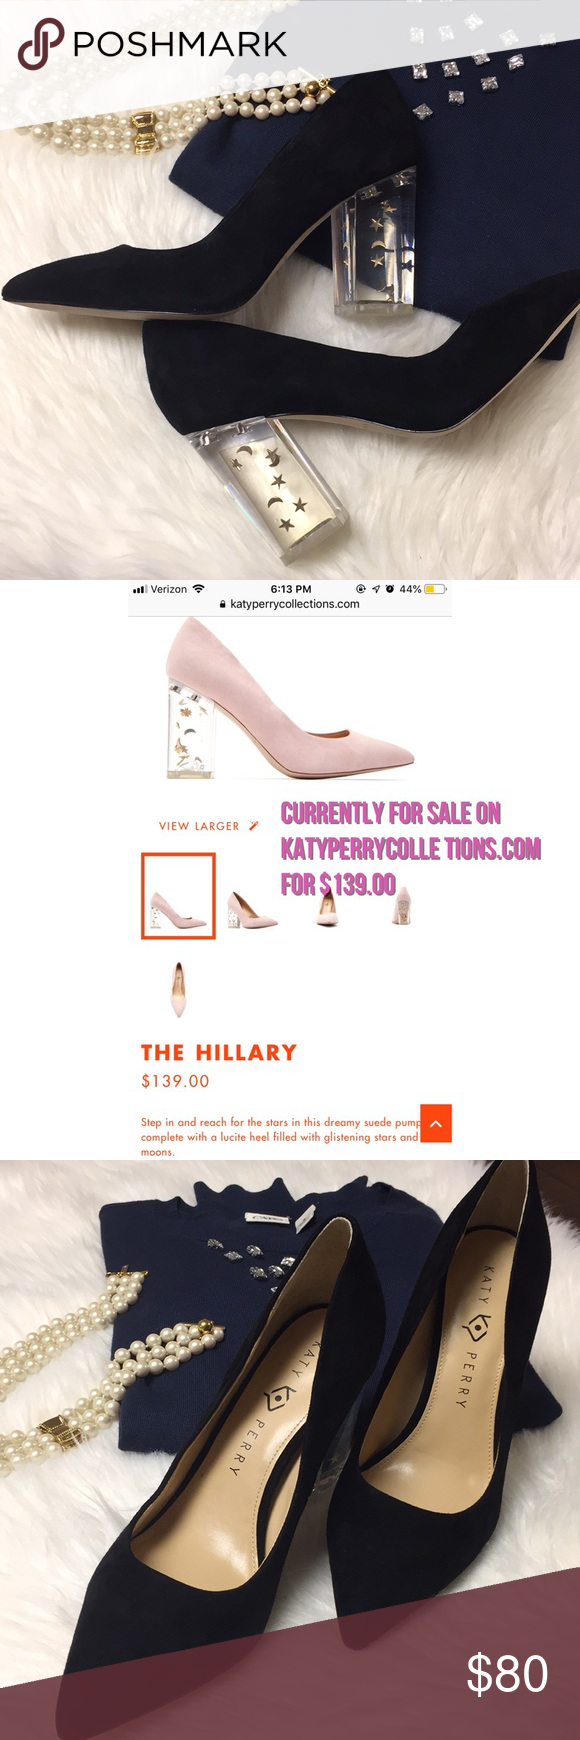 36de5417ac5 Katy Perry The Hillary Heels THE HILLARY  139.00 Step in and reach for the  stars in this dreamy suede pump complete with a lucite heel filled with ...